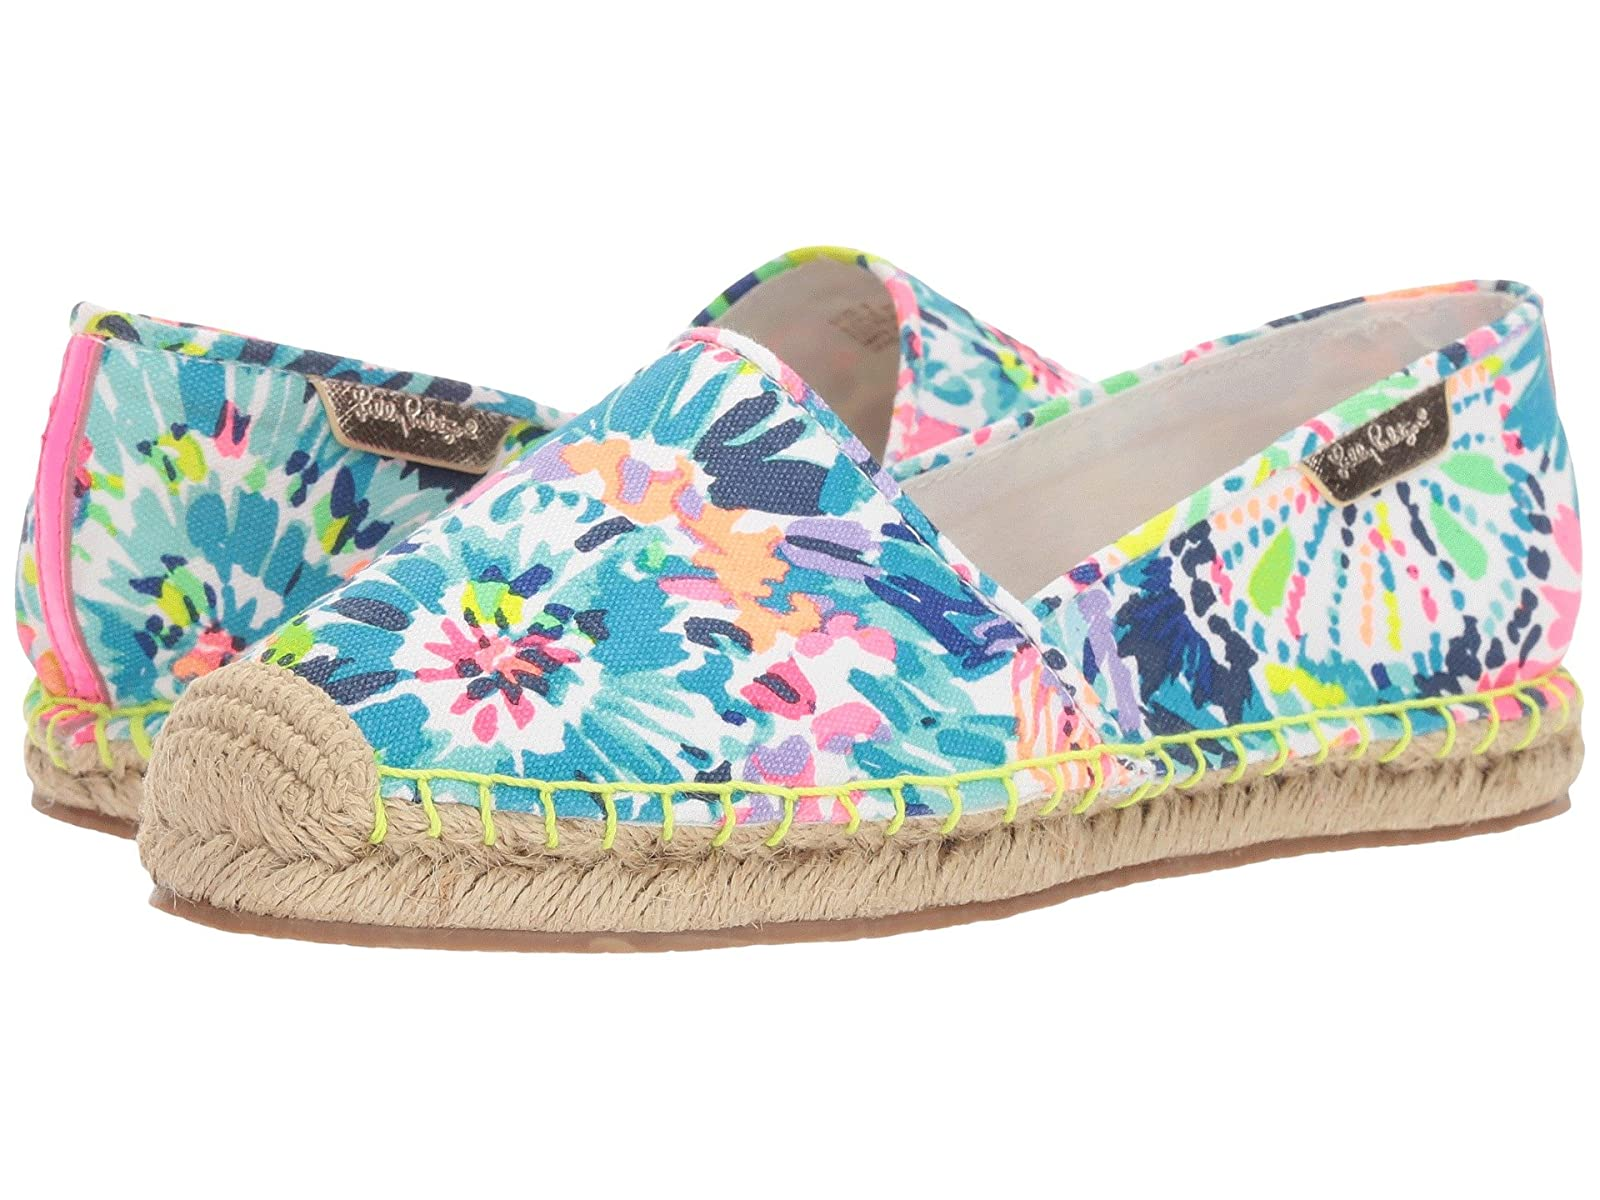 Lilly Pulitzer Lia EspadrilleCheap and distinctive eye-catching shoes